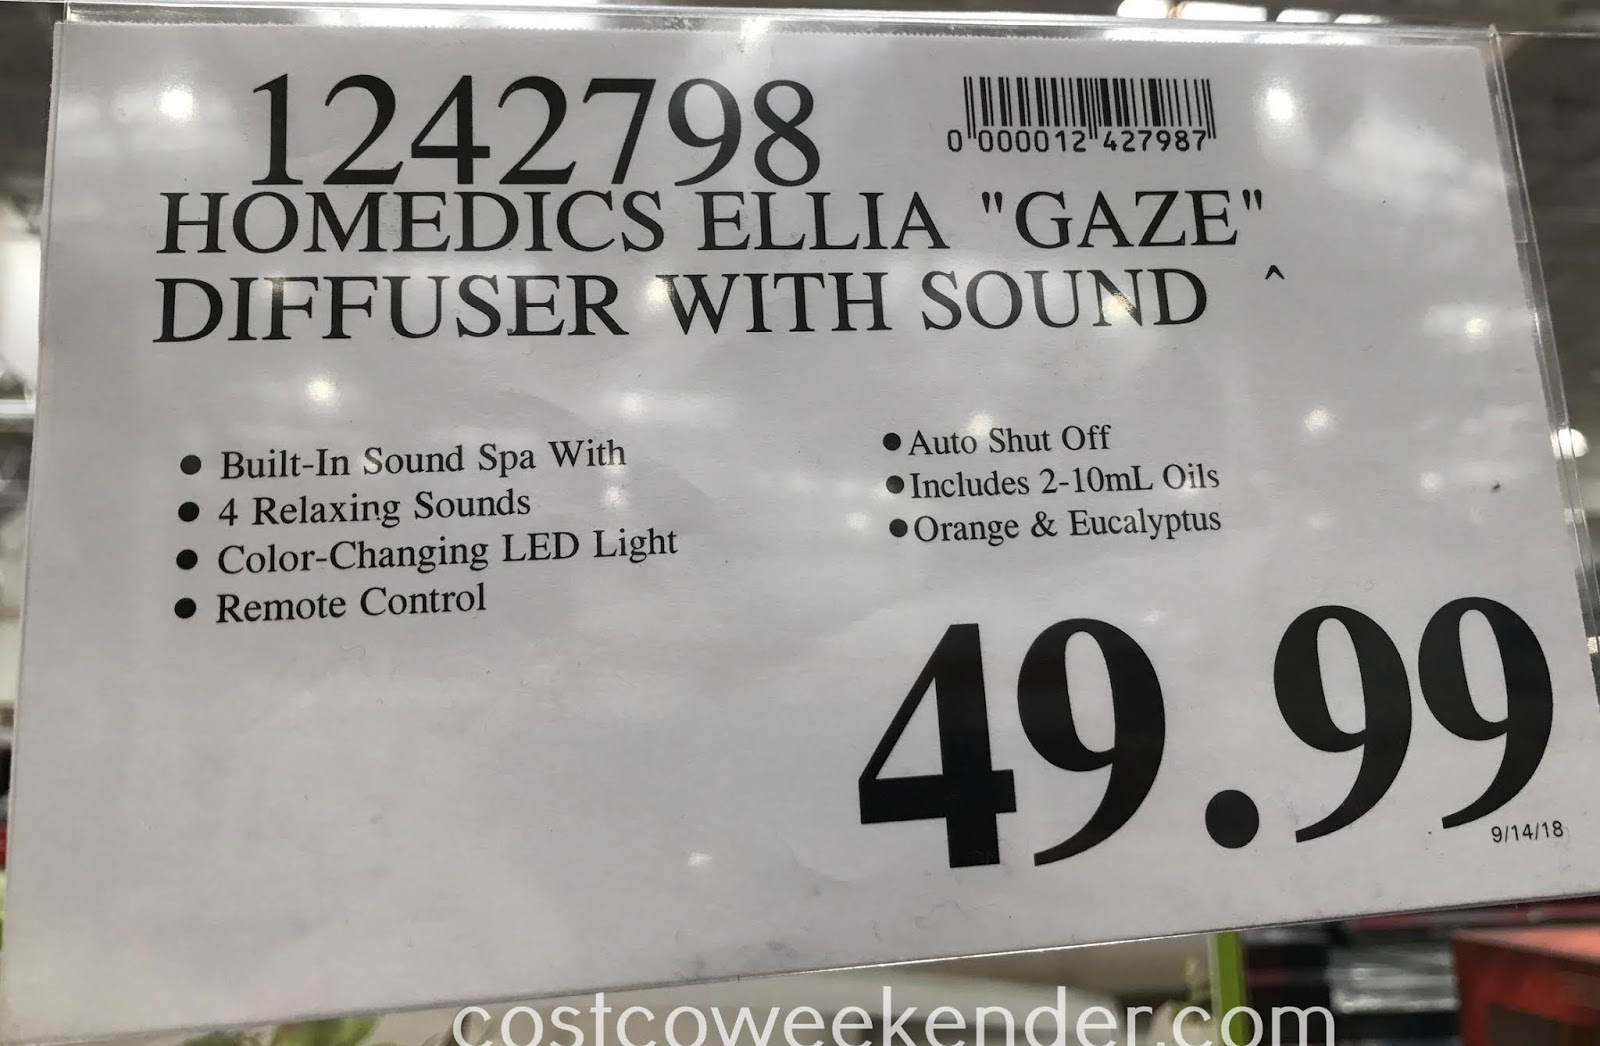 Deal for the HoMedics Ellia Gaze Aroma Diffuser at Costco